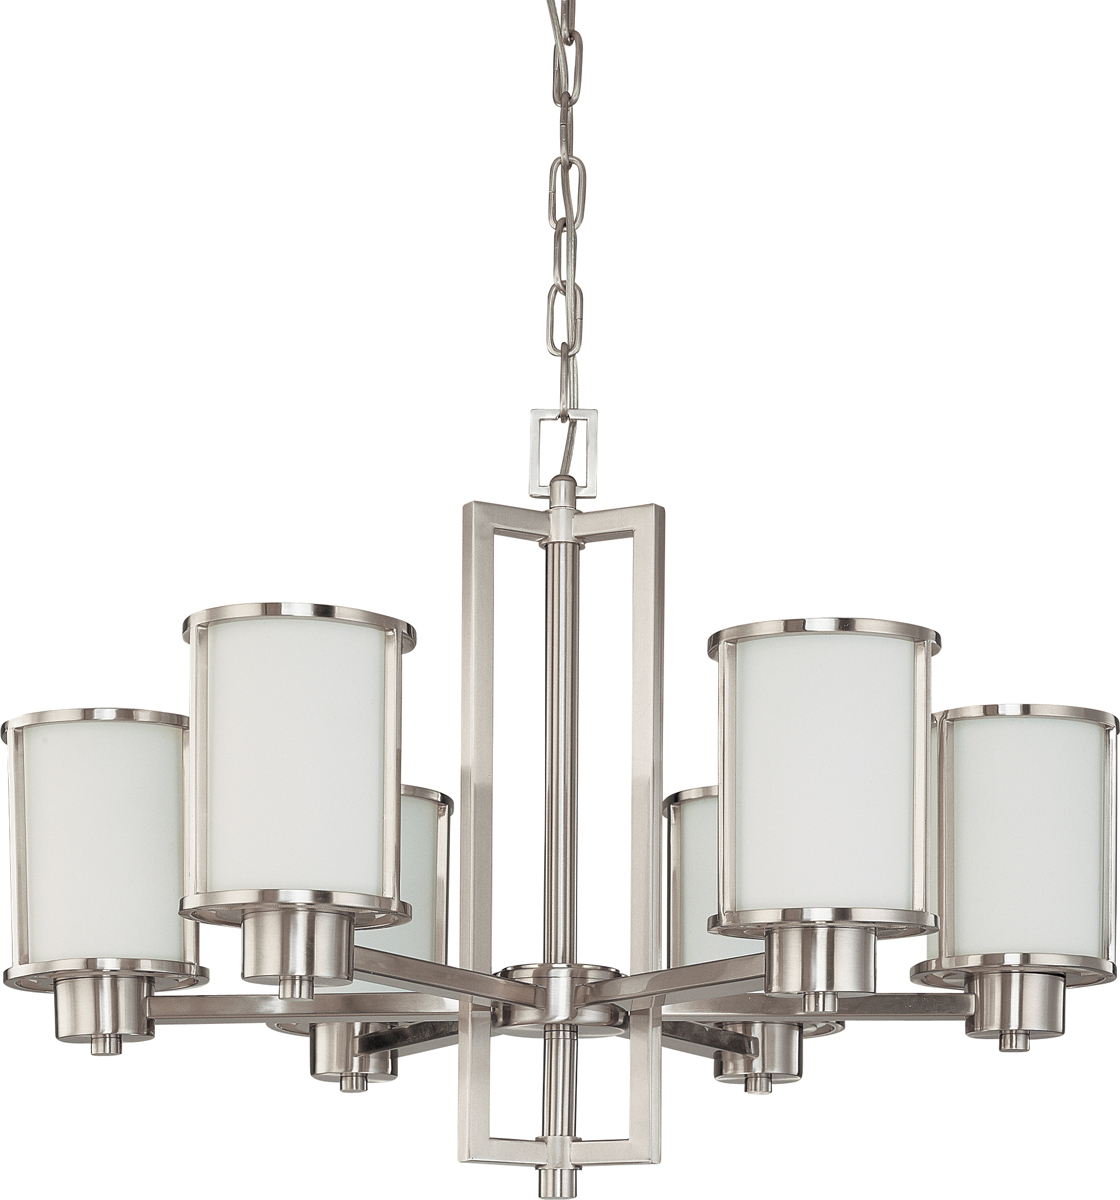 Nuvo lighting 60 2853 odeon 6 light convertible up down chandelier with s - Table transformable up down ...